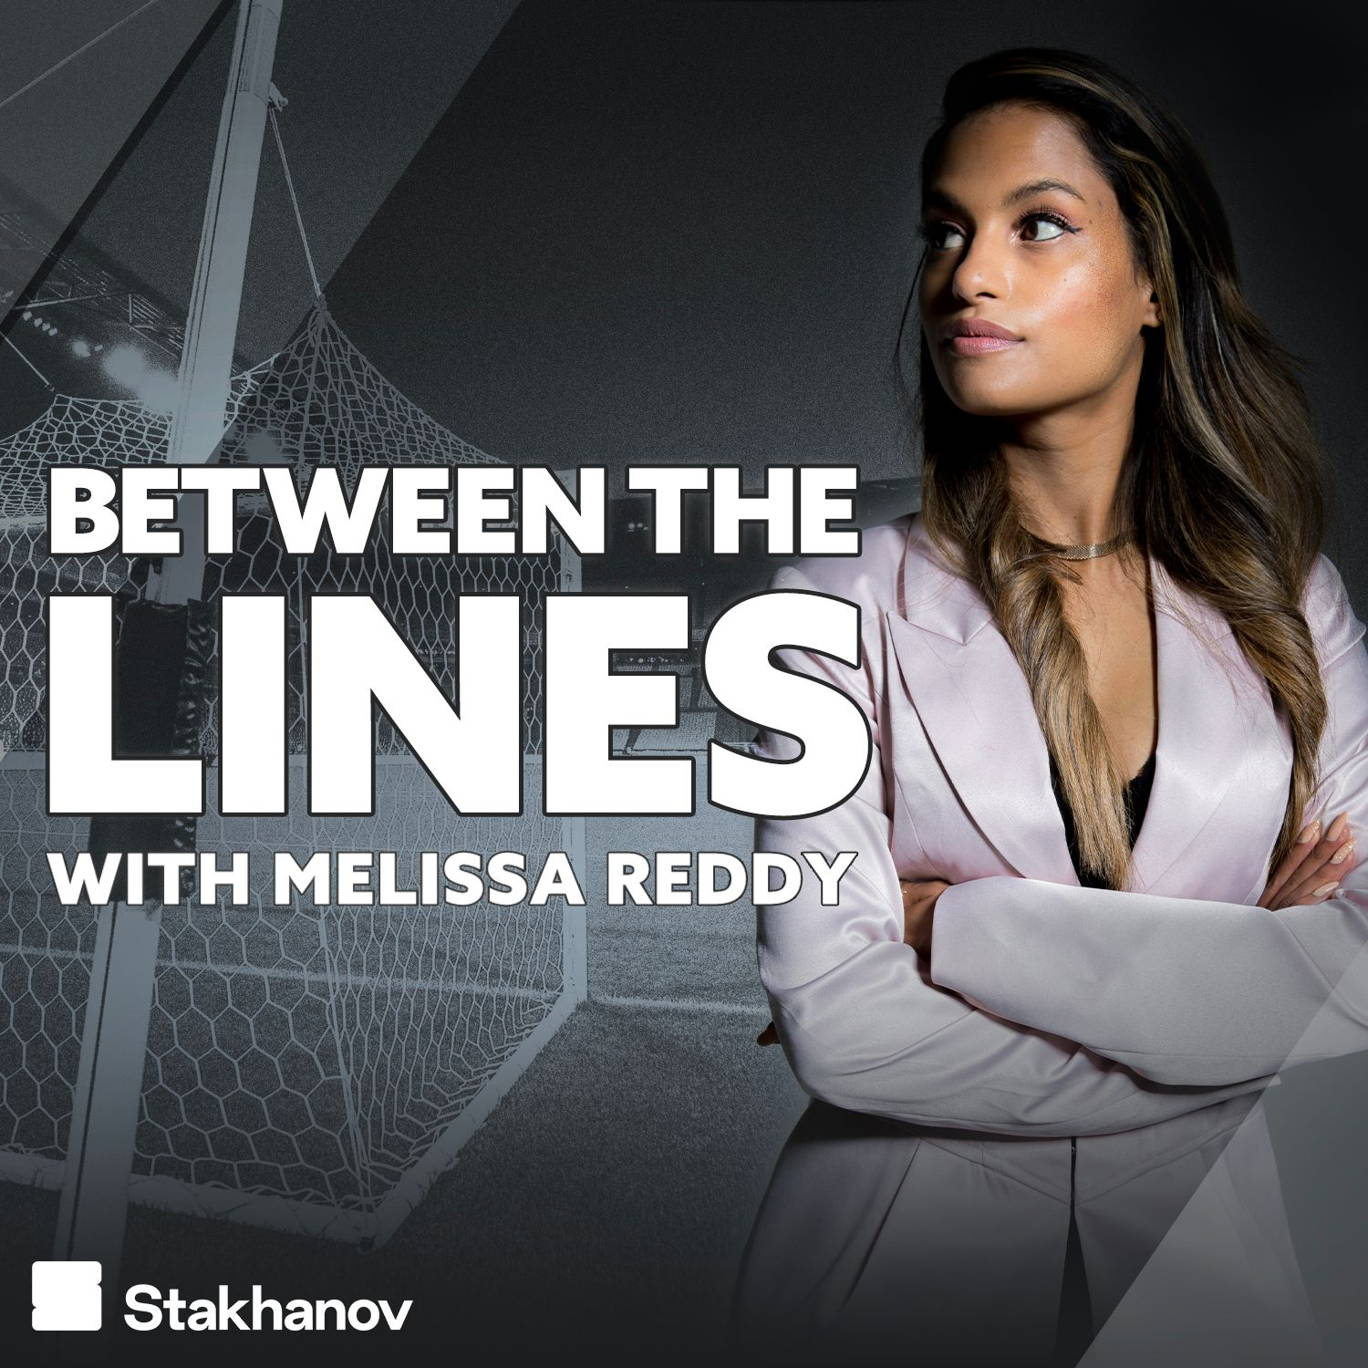 The artwork for the Between The Lines with Melissa Reddy podcast.